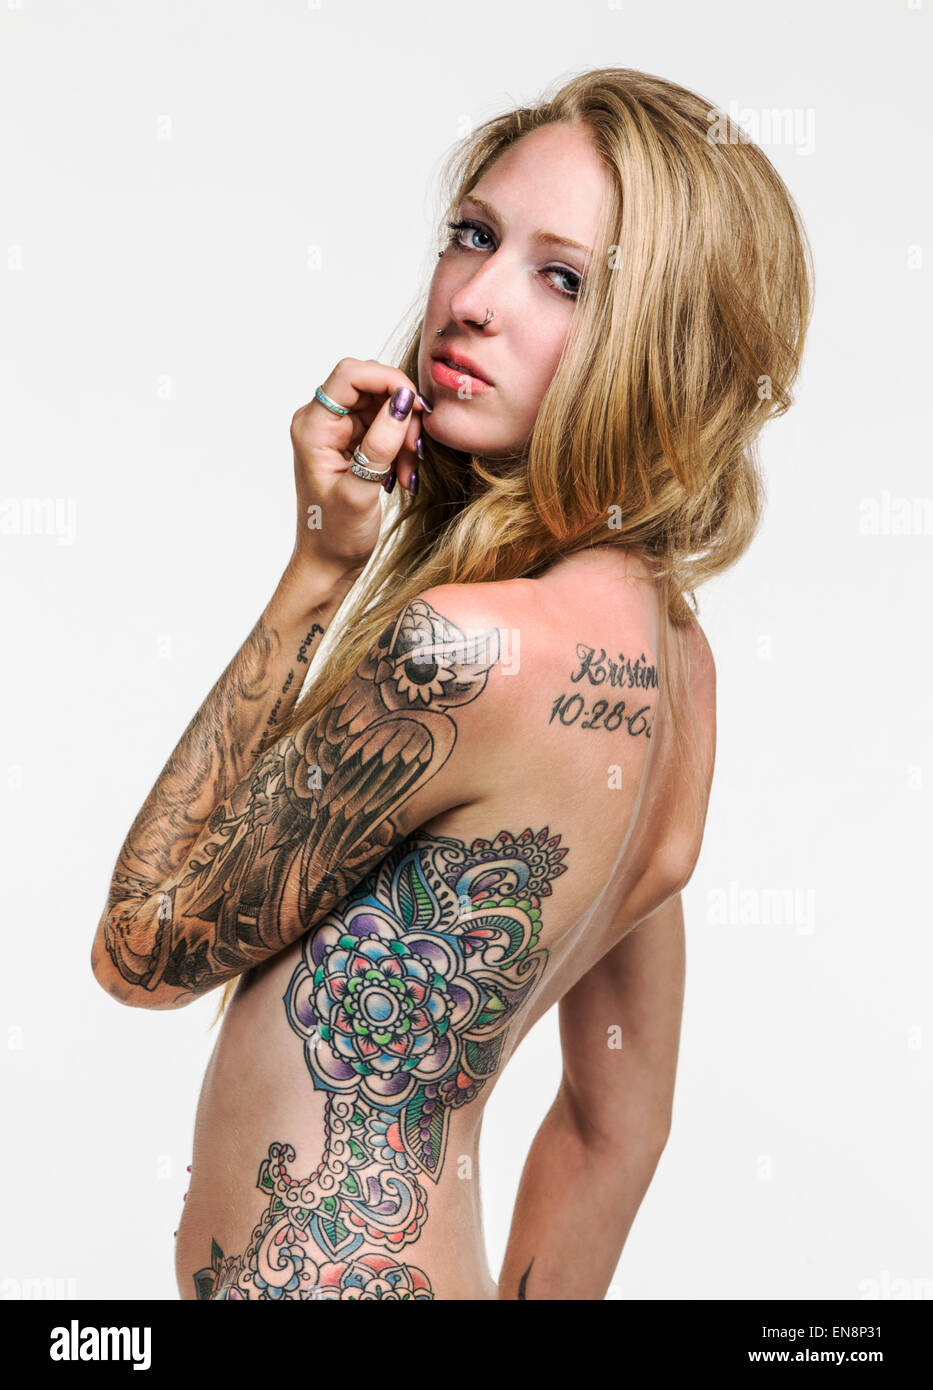 Tattos on body nude